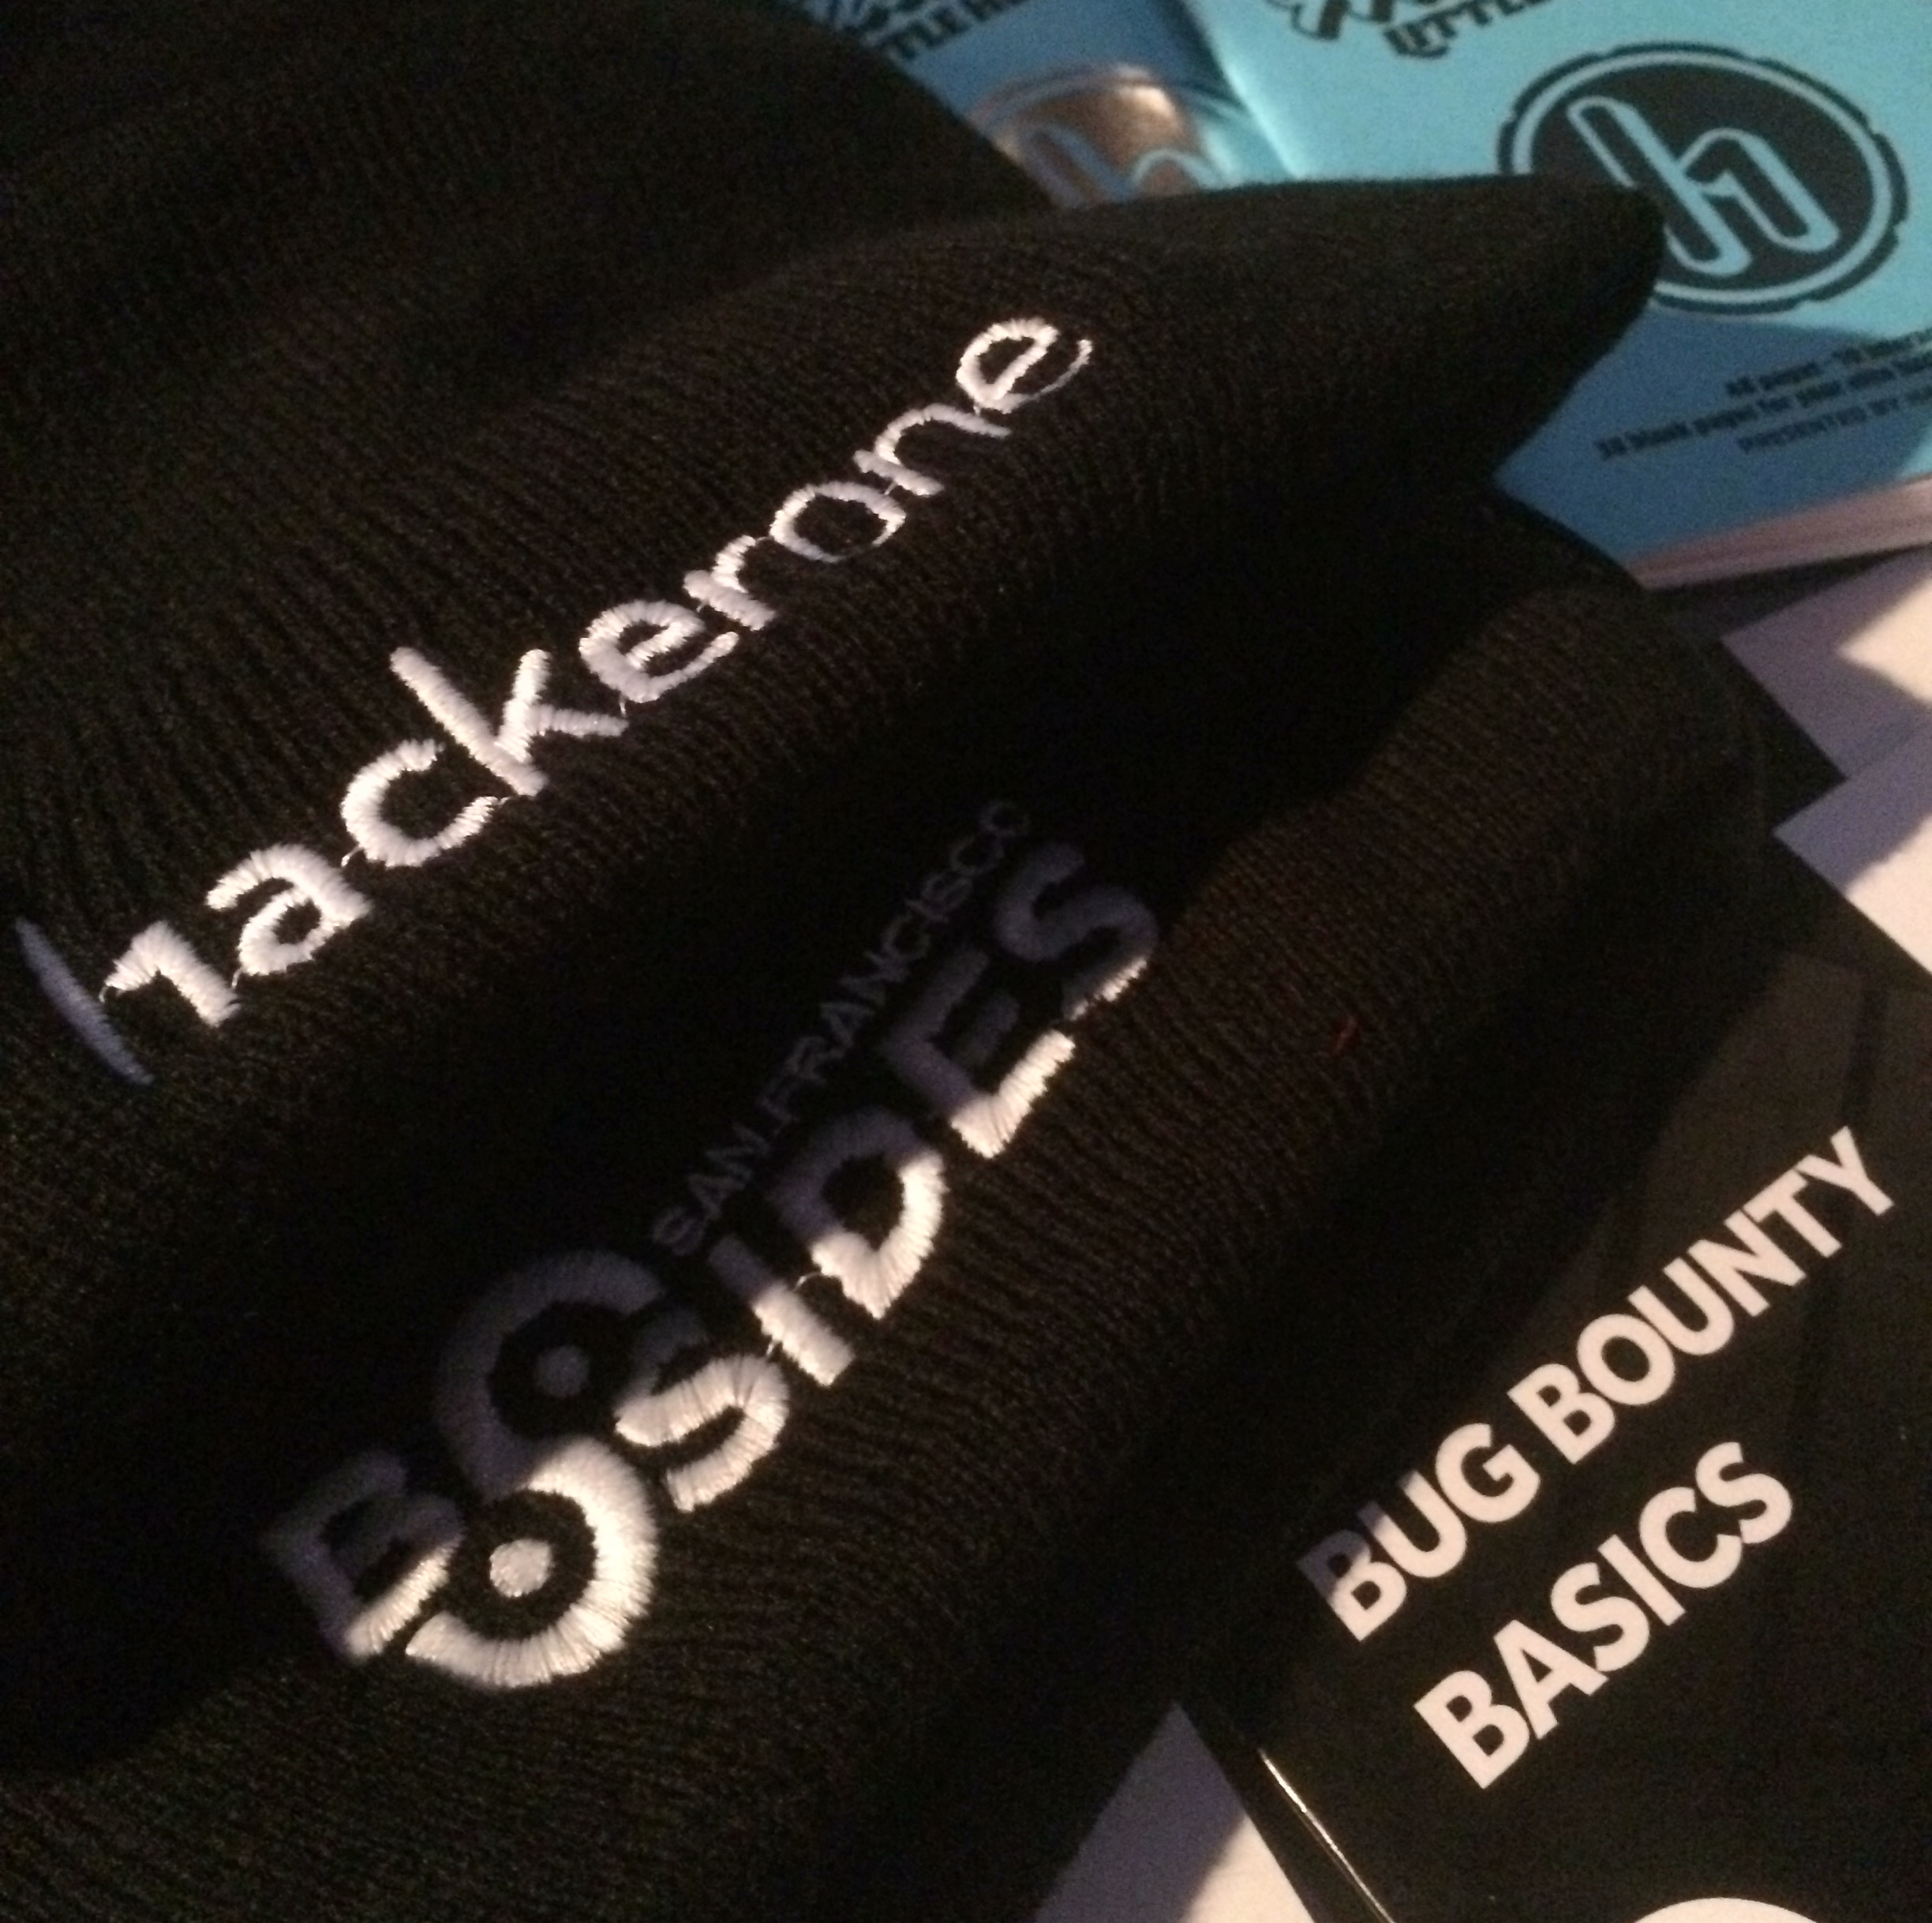 RSA stands for Really Sweet Activities: HackerOne recaps an